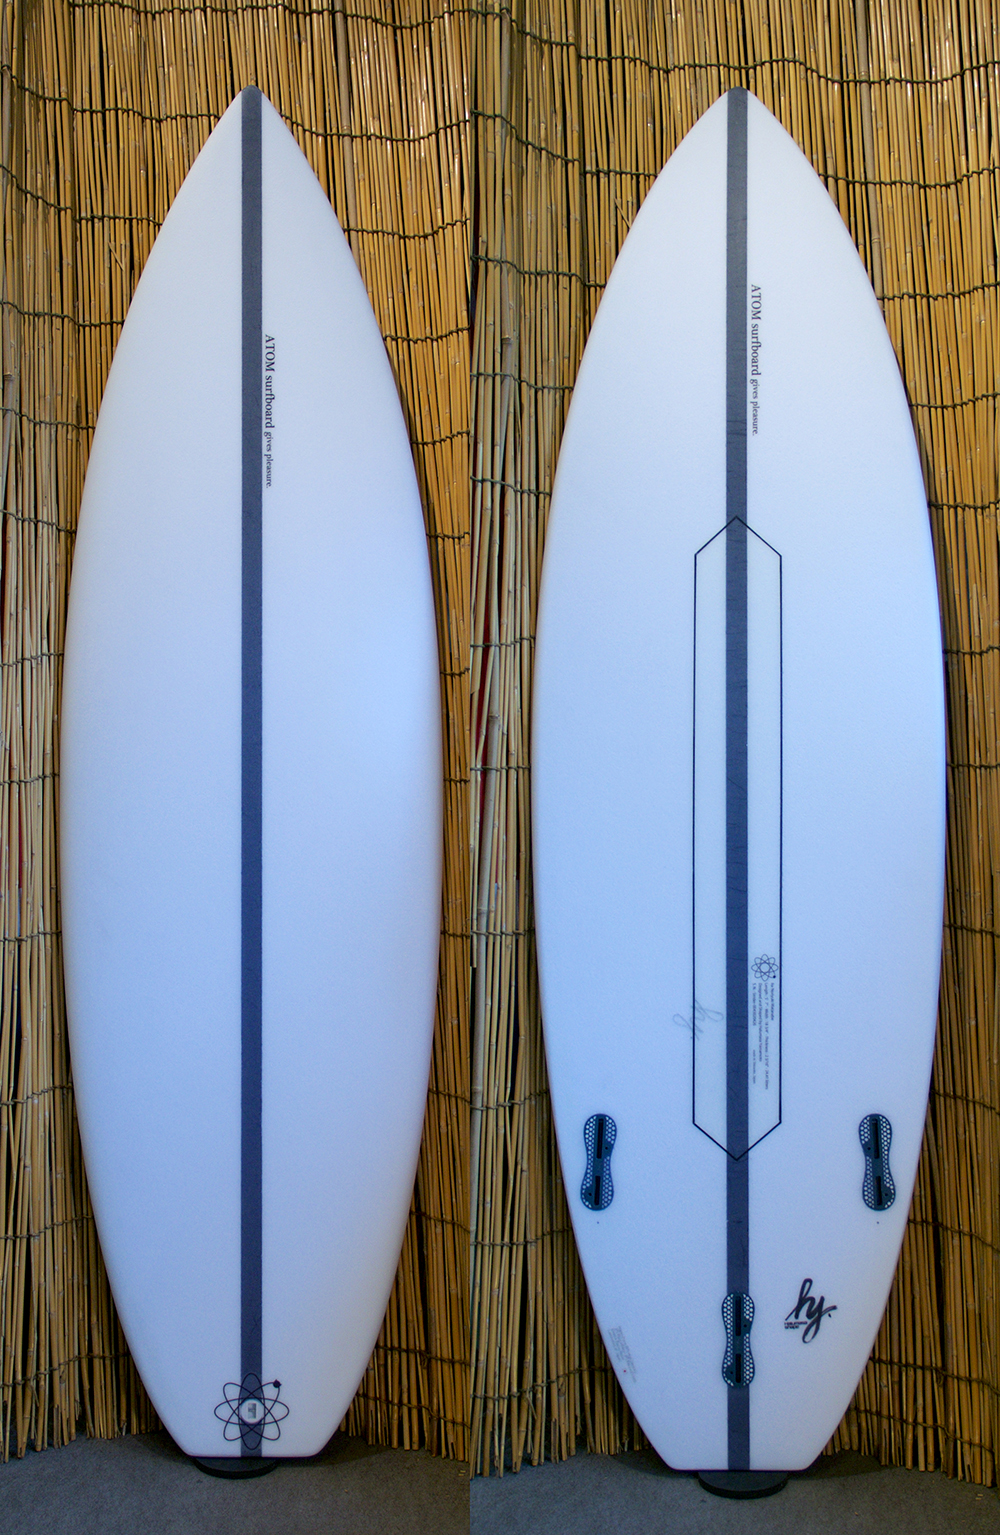 ATOM Surfboard Strider model by ATOM Tech